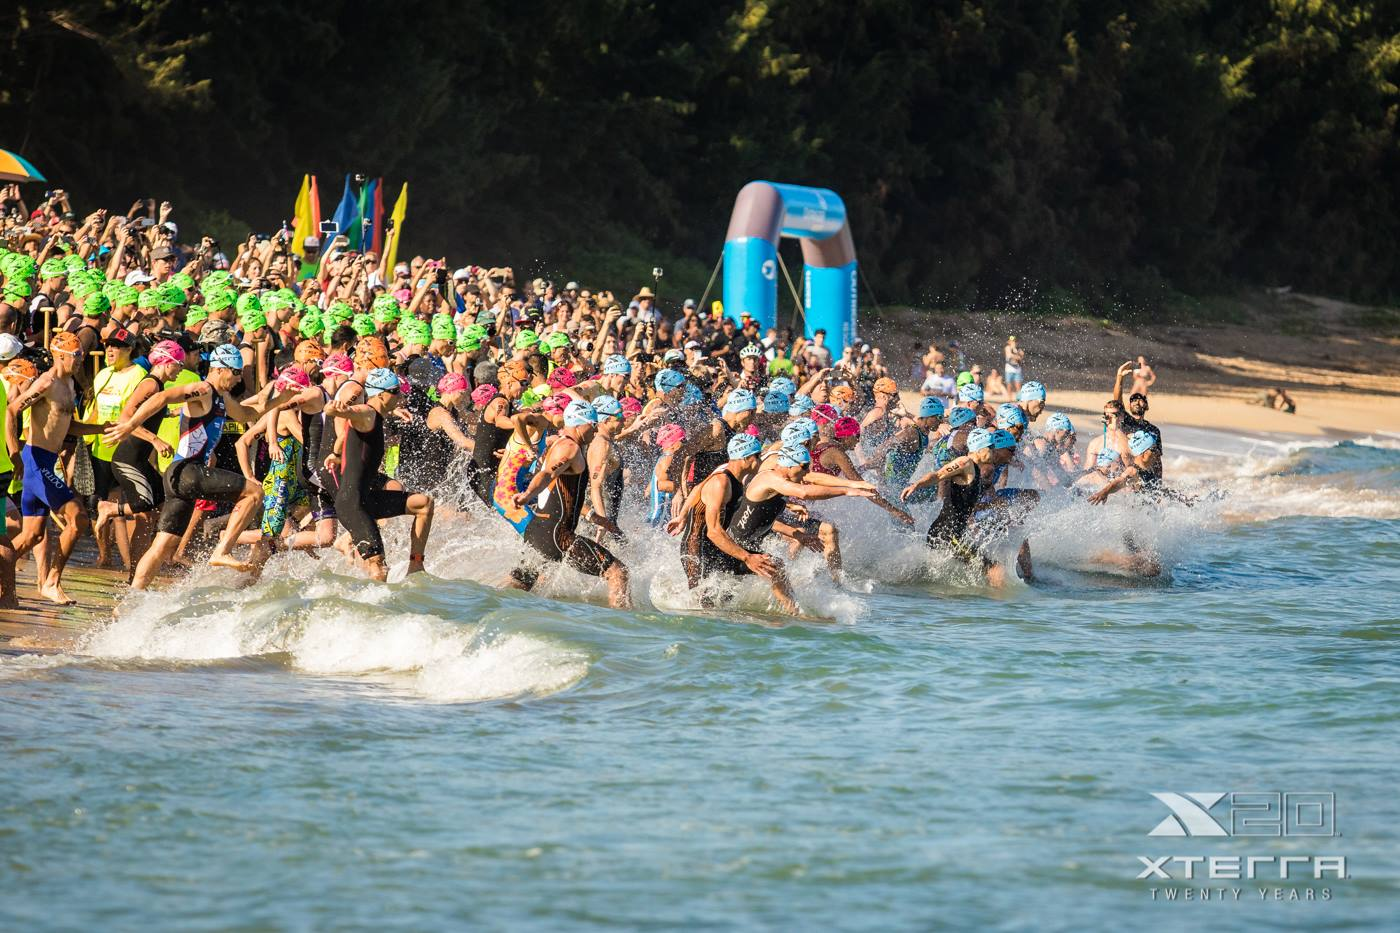 XTERRA_WORLD_CHAMPIONSHIP_2015_00017